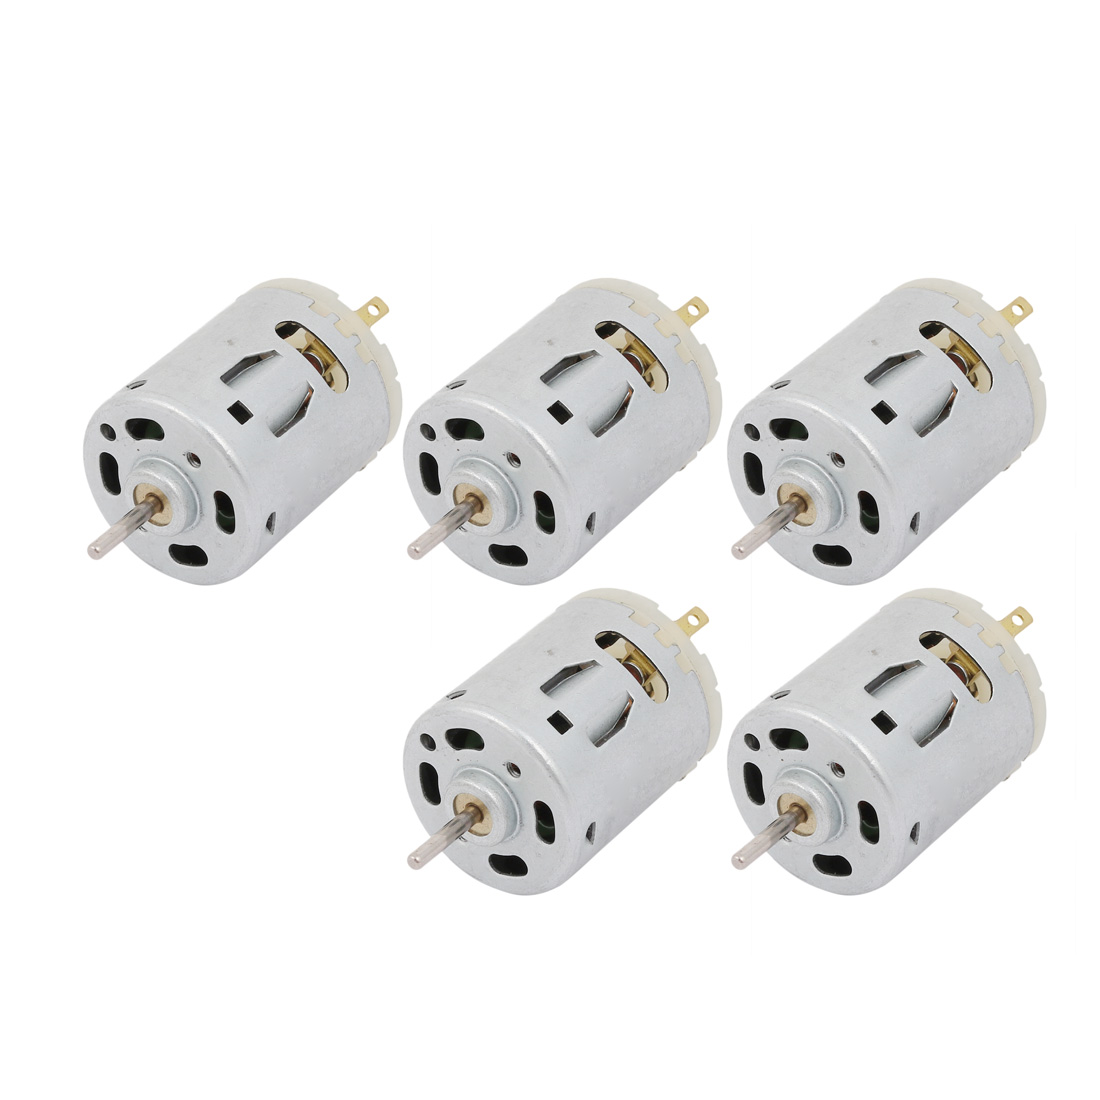 5pcs DC36V 35000RPM High Speed Electric Micro DC Motor R365 for RC Model Toy